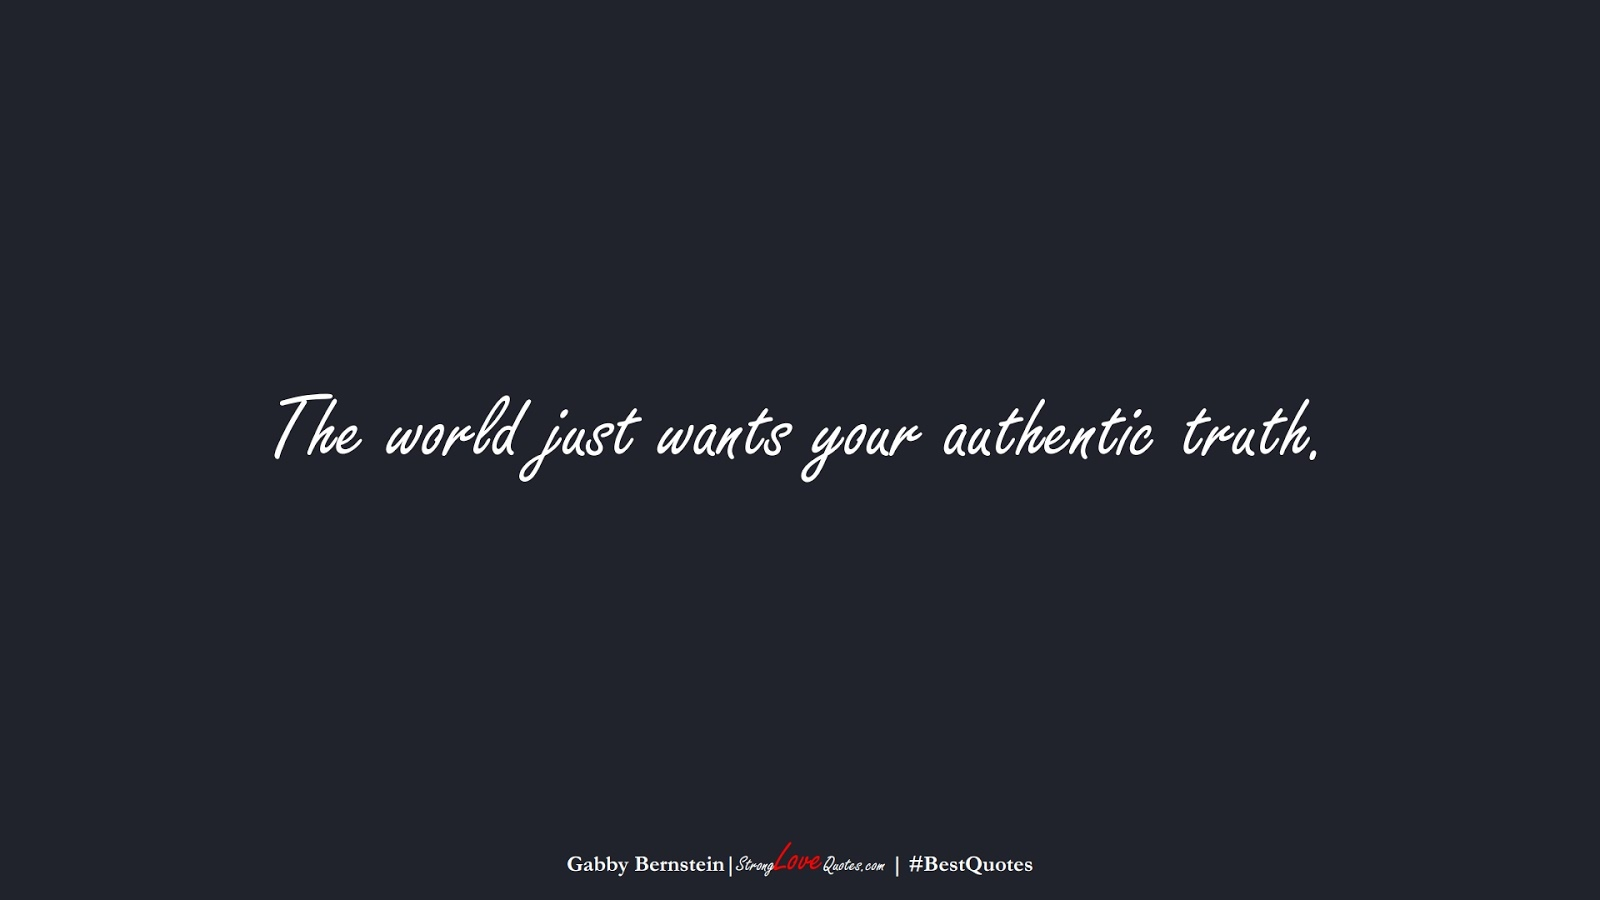 The world just wants your authentic truth. (Gabby Bernstein);  #BestQuotes